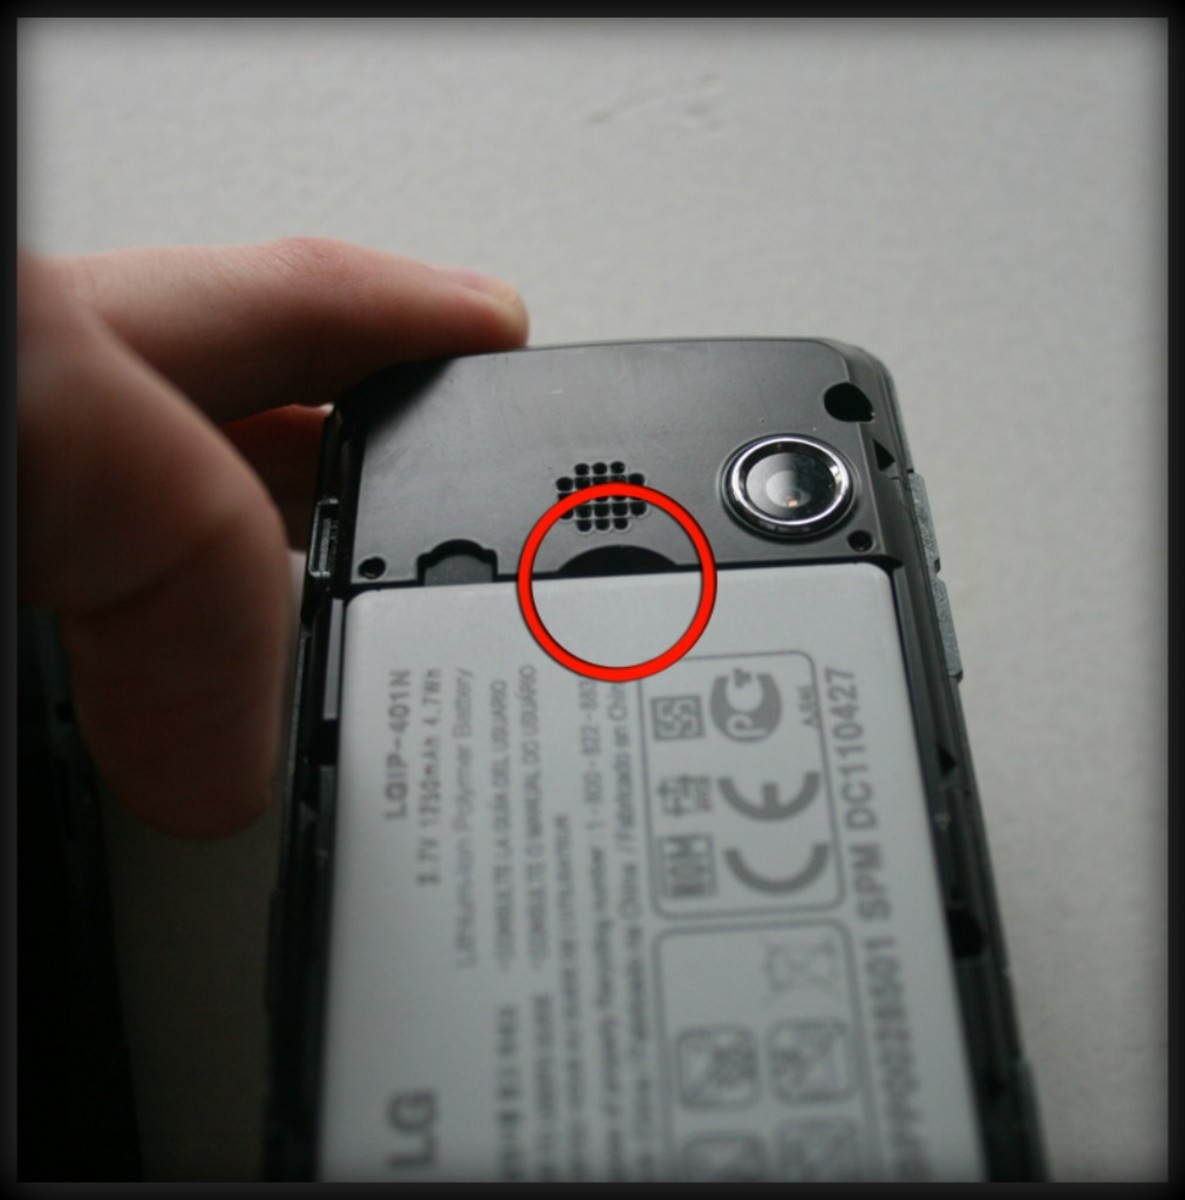 On the LG Rumor Touch there is a small cutout for using your fingernail to remove the battery. Most phones will have some sort of notch to all you to slip a fingernail or a small object to remove the battery.